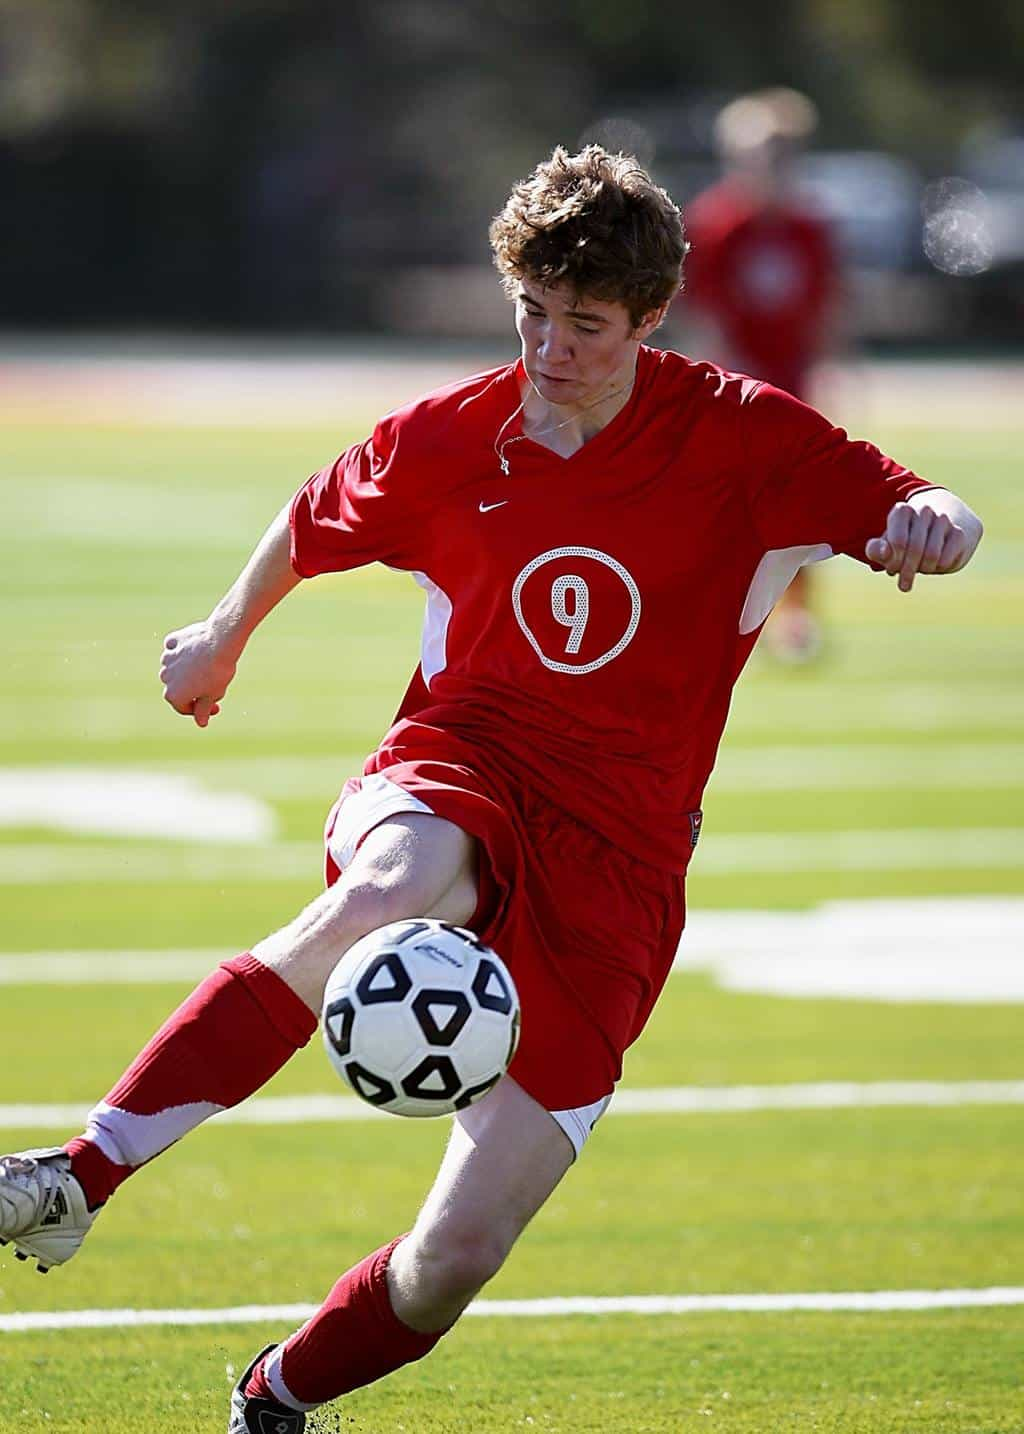 Man in red jersey kicking a soccer ball